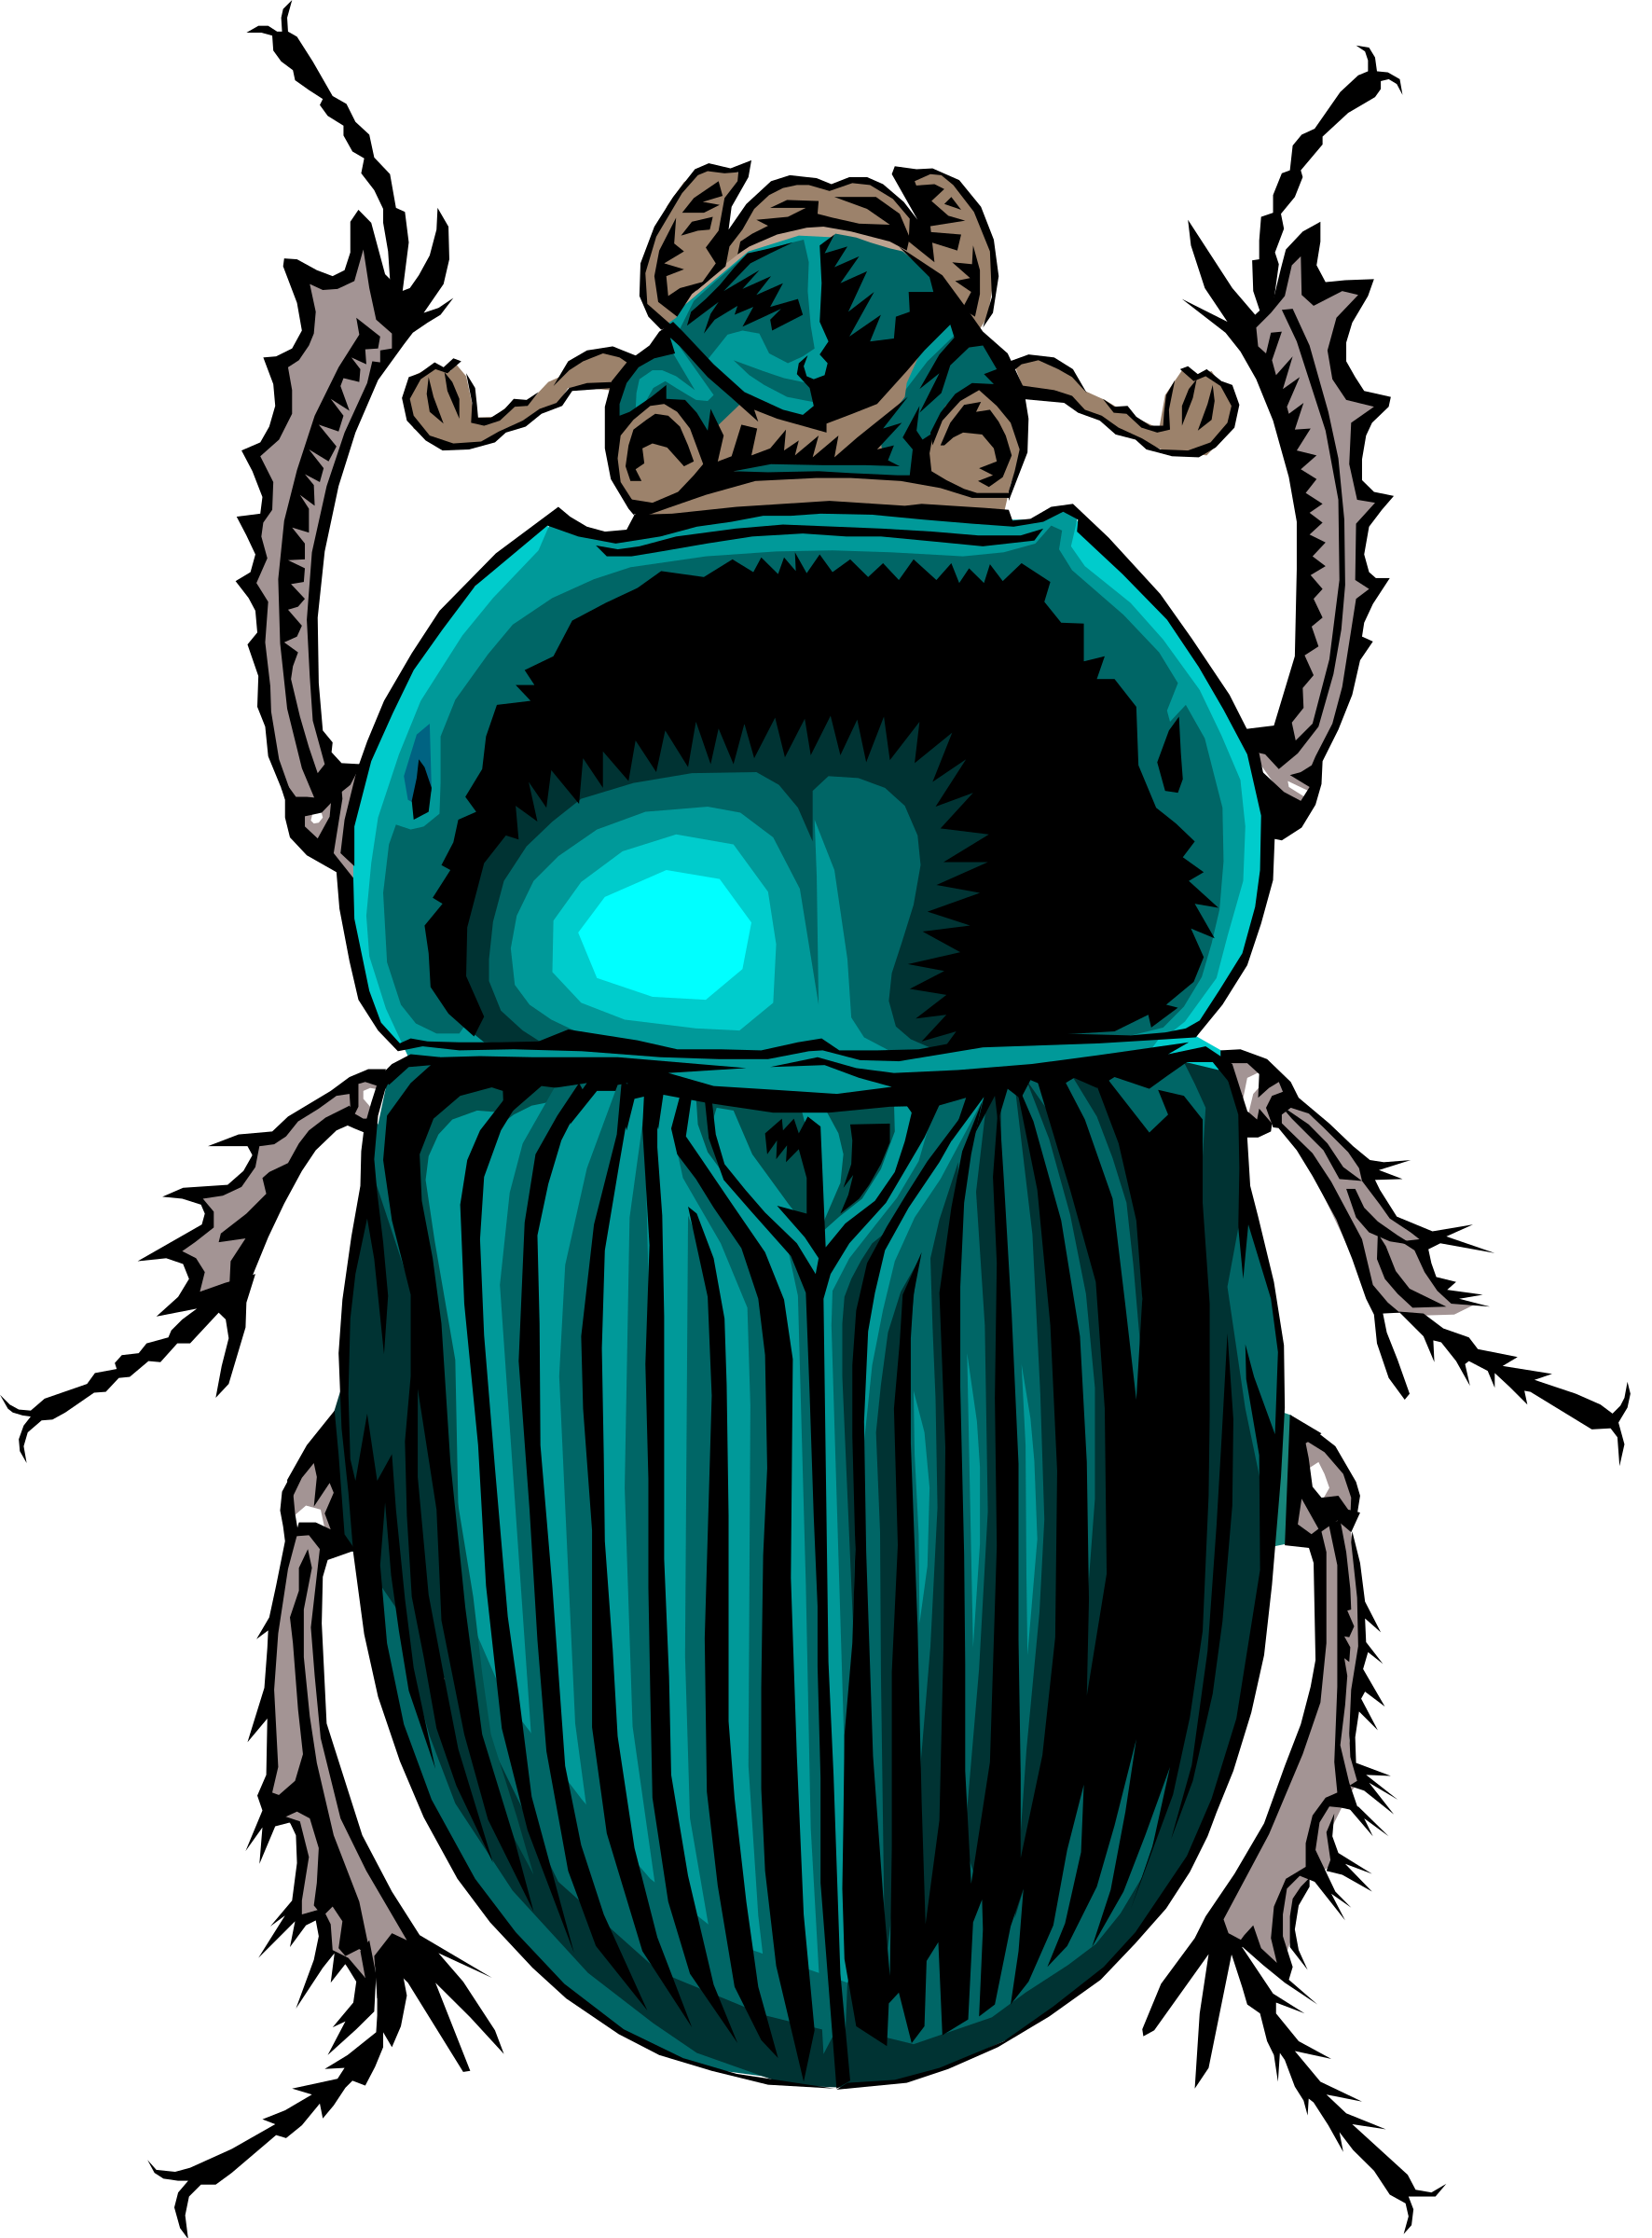 Insect clipart desert insect. Scarabe big image png